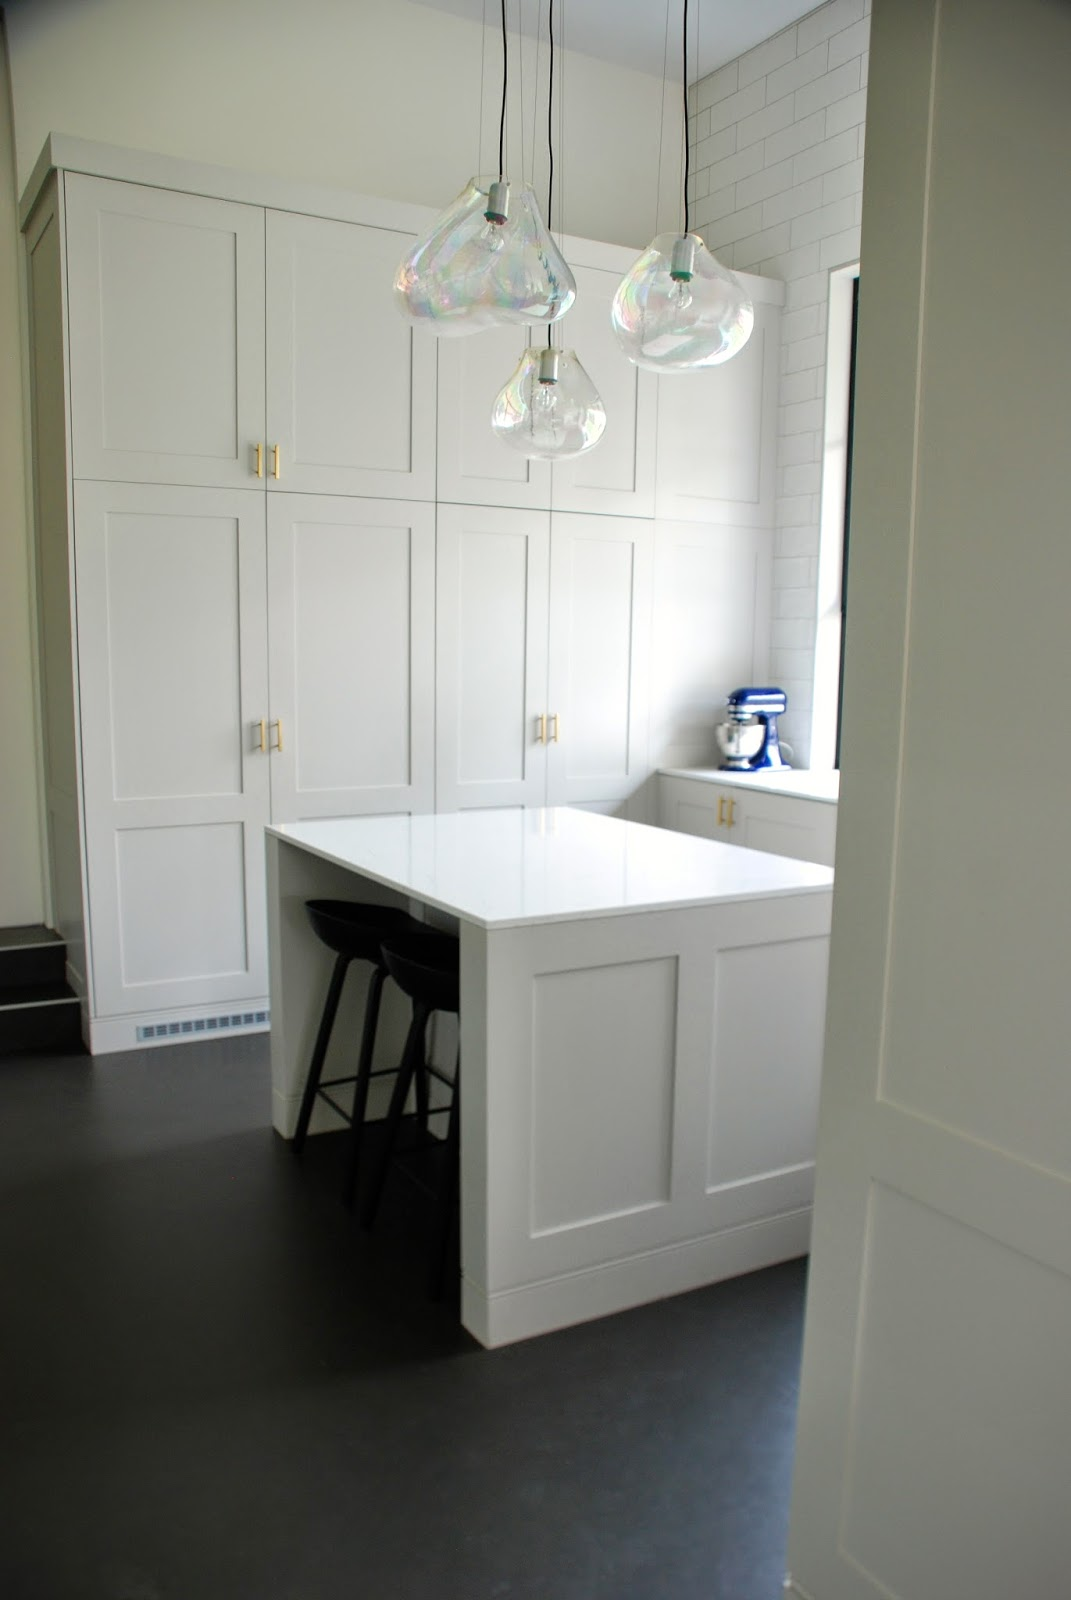 Adelaide Villa: Renovation - The finished Kitchen